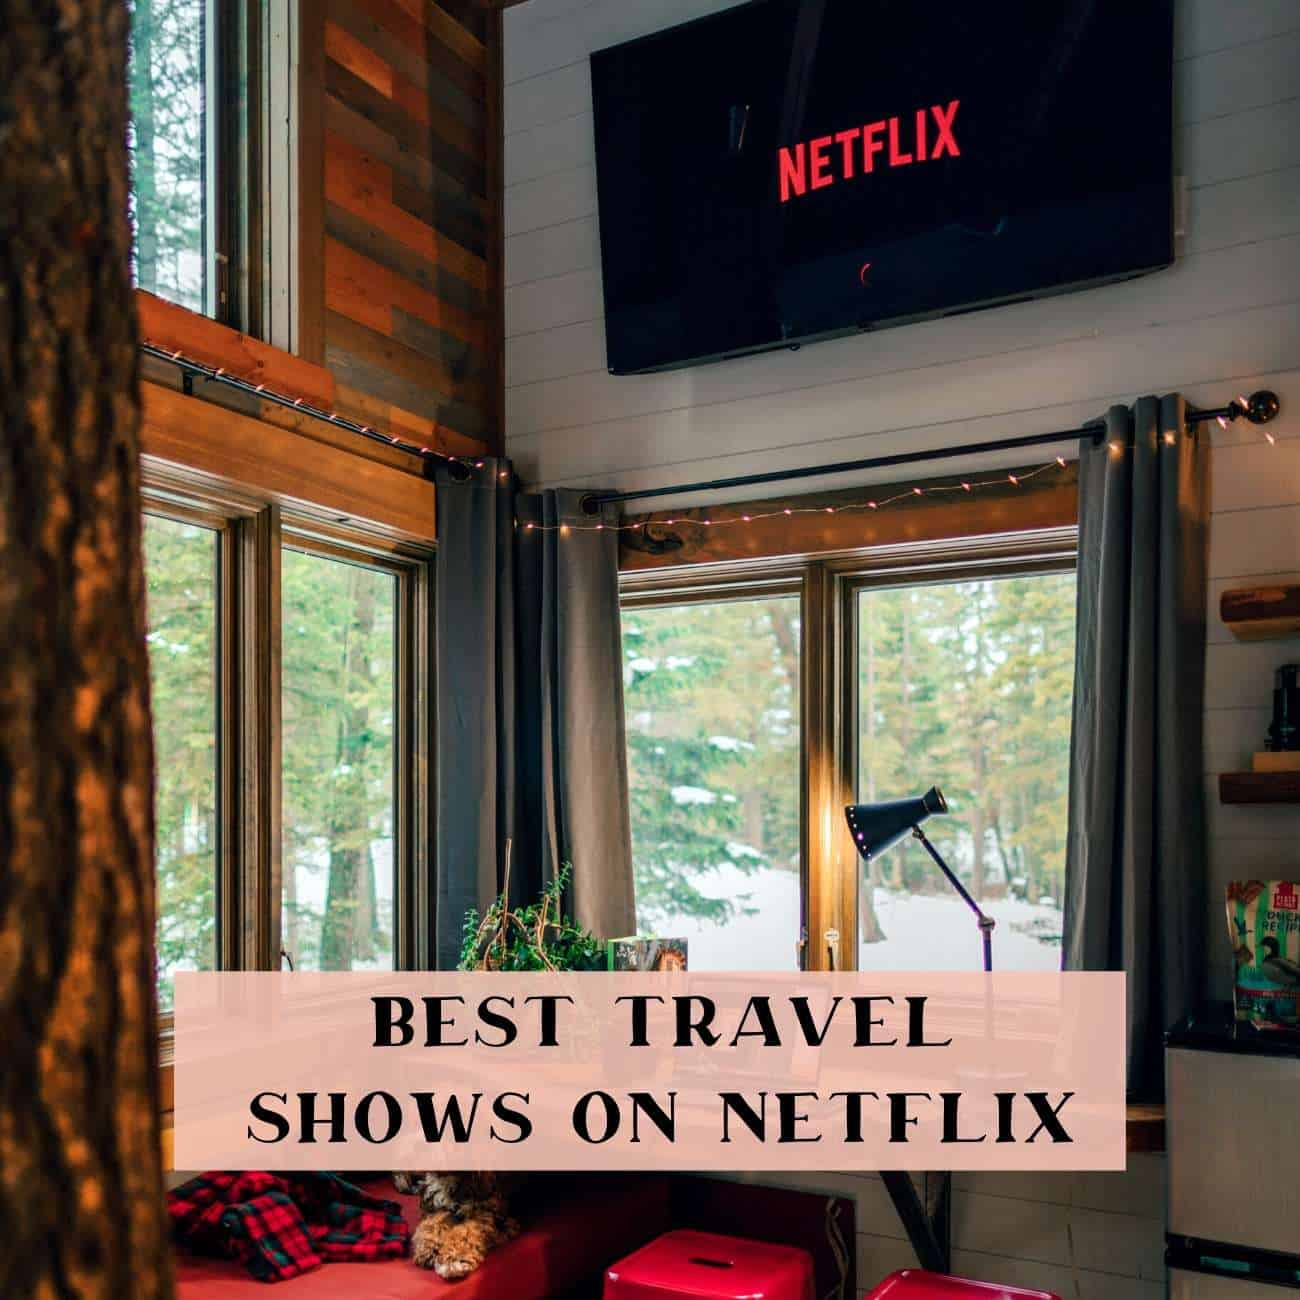 Netflix travel programs